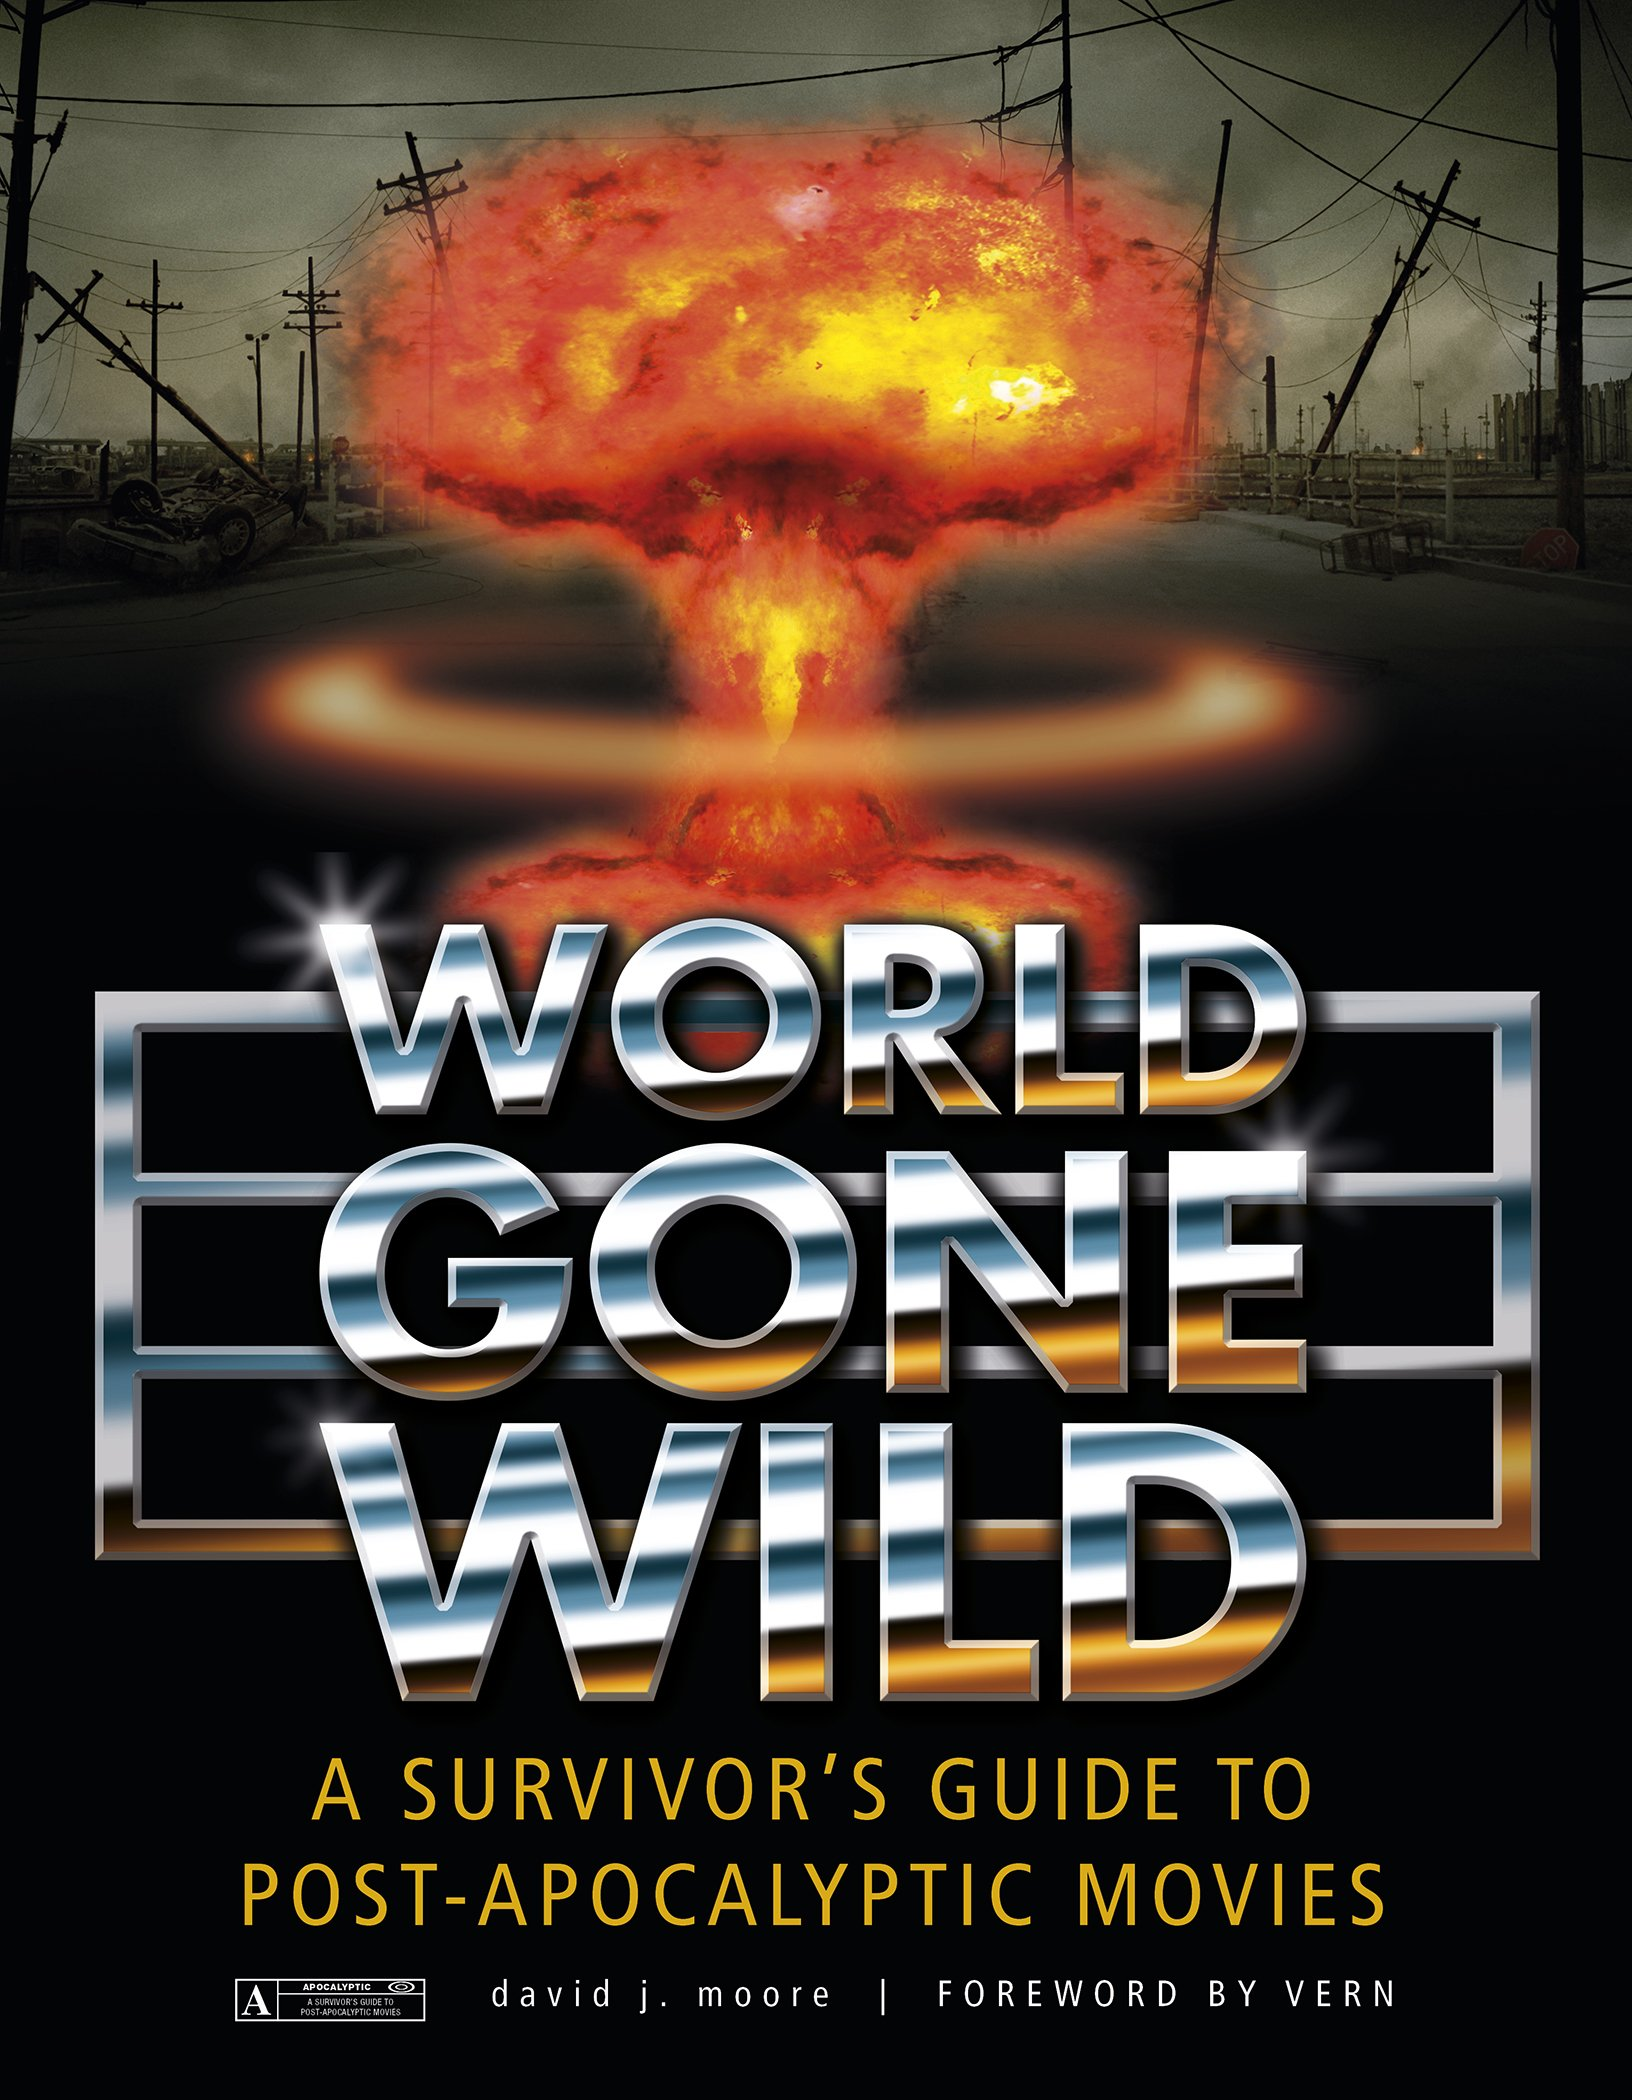 World Gone Wild: A Survivor's Guide to Post-Apocalyptic Movies:  Amazon.co.uk: David J Moore: 9780764345876: Books